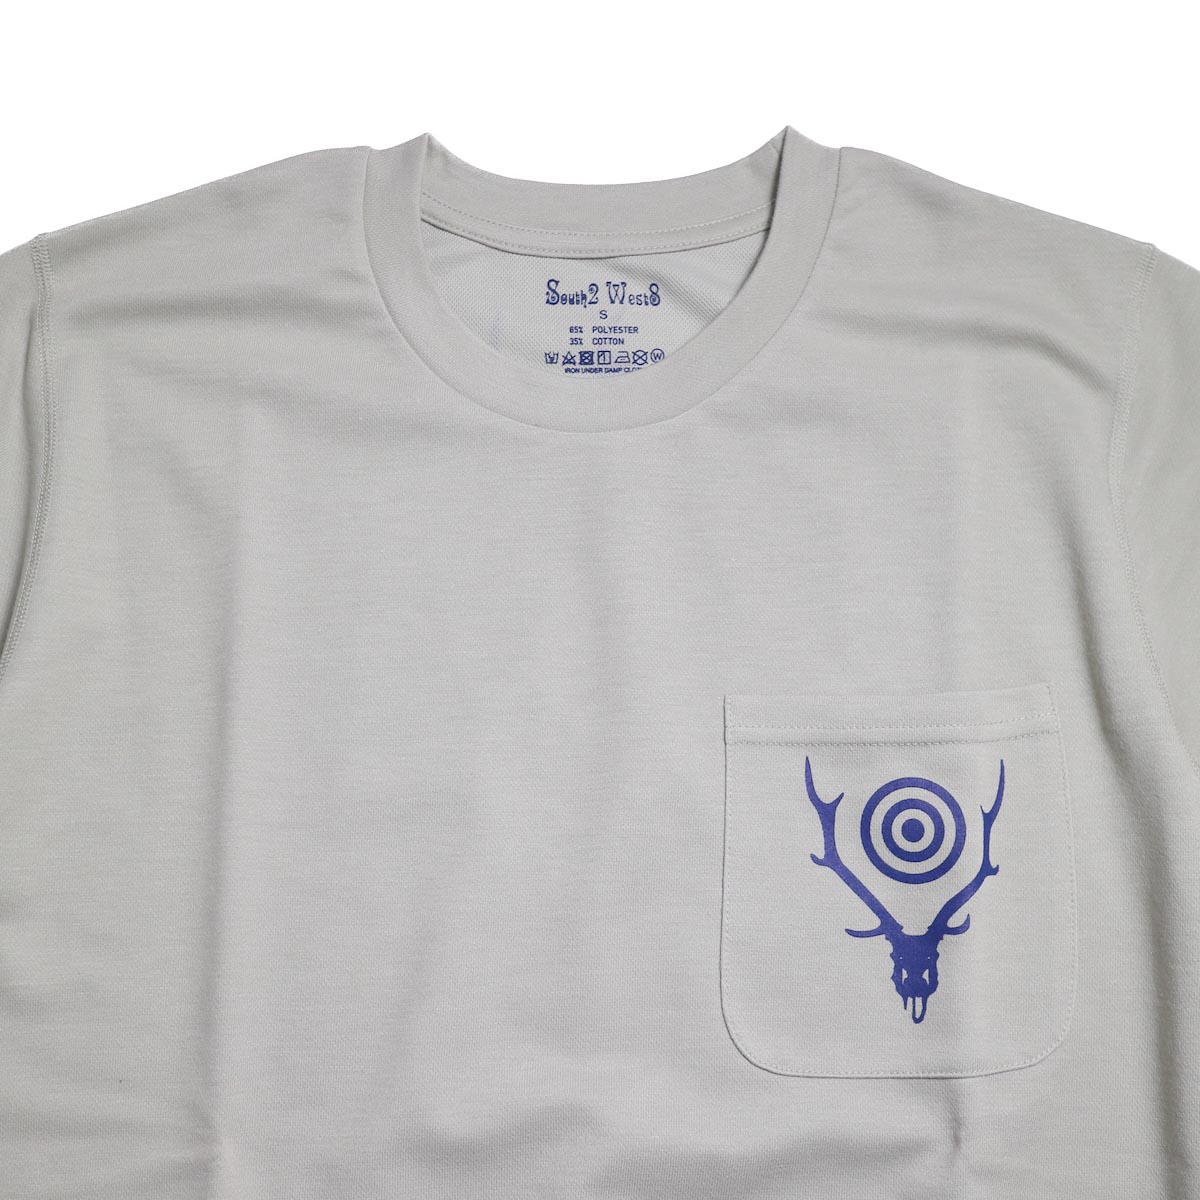 SOUTH2 WEST8 / Round Pocket Tee (Circle Horn) -Gray  首周り